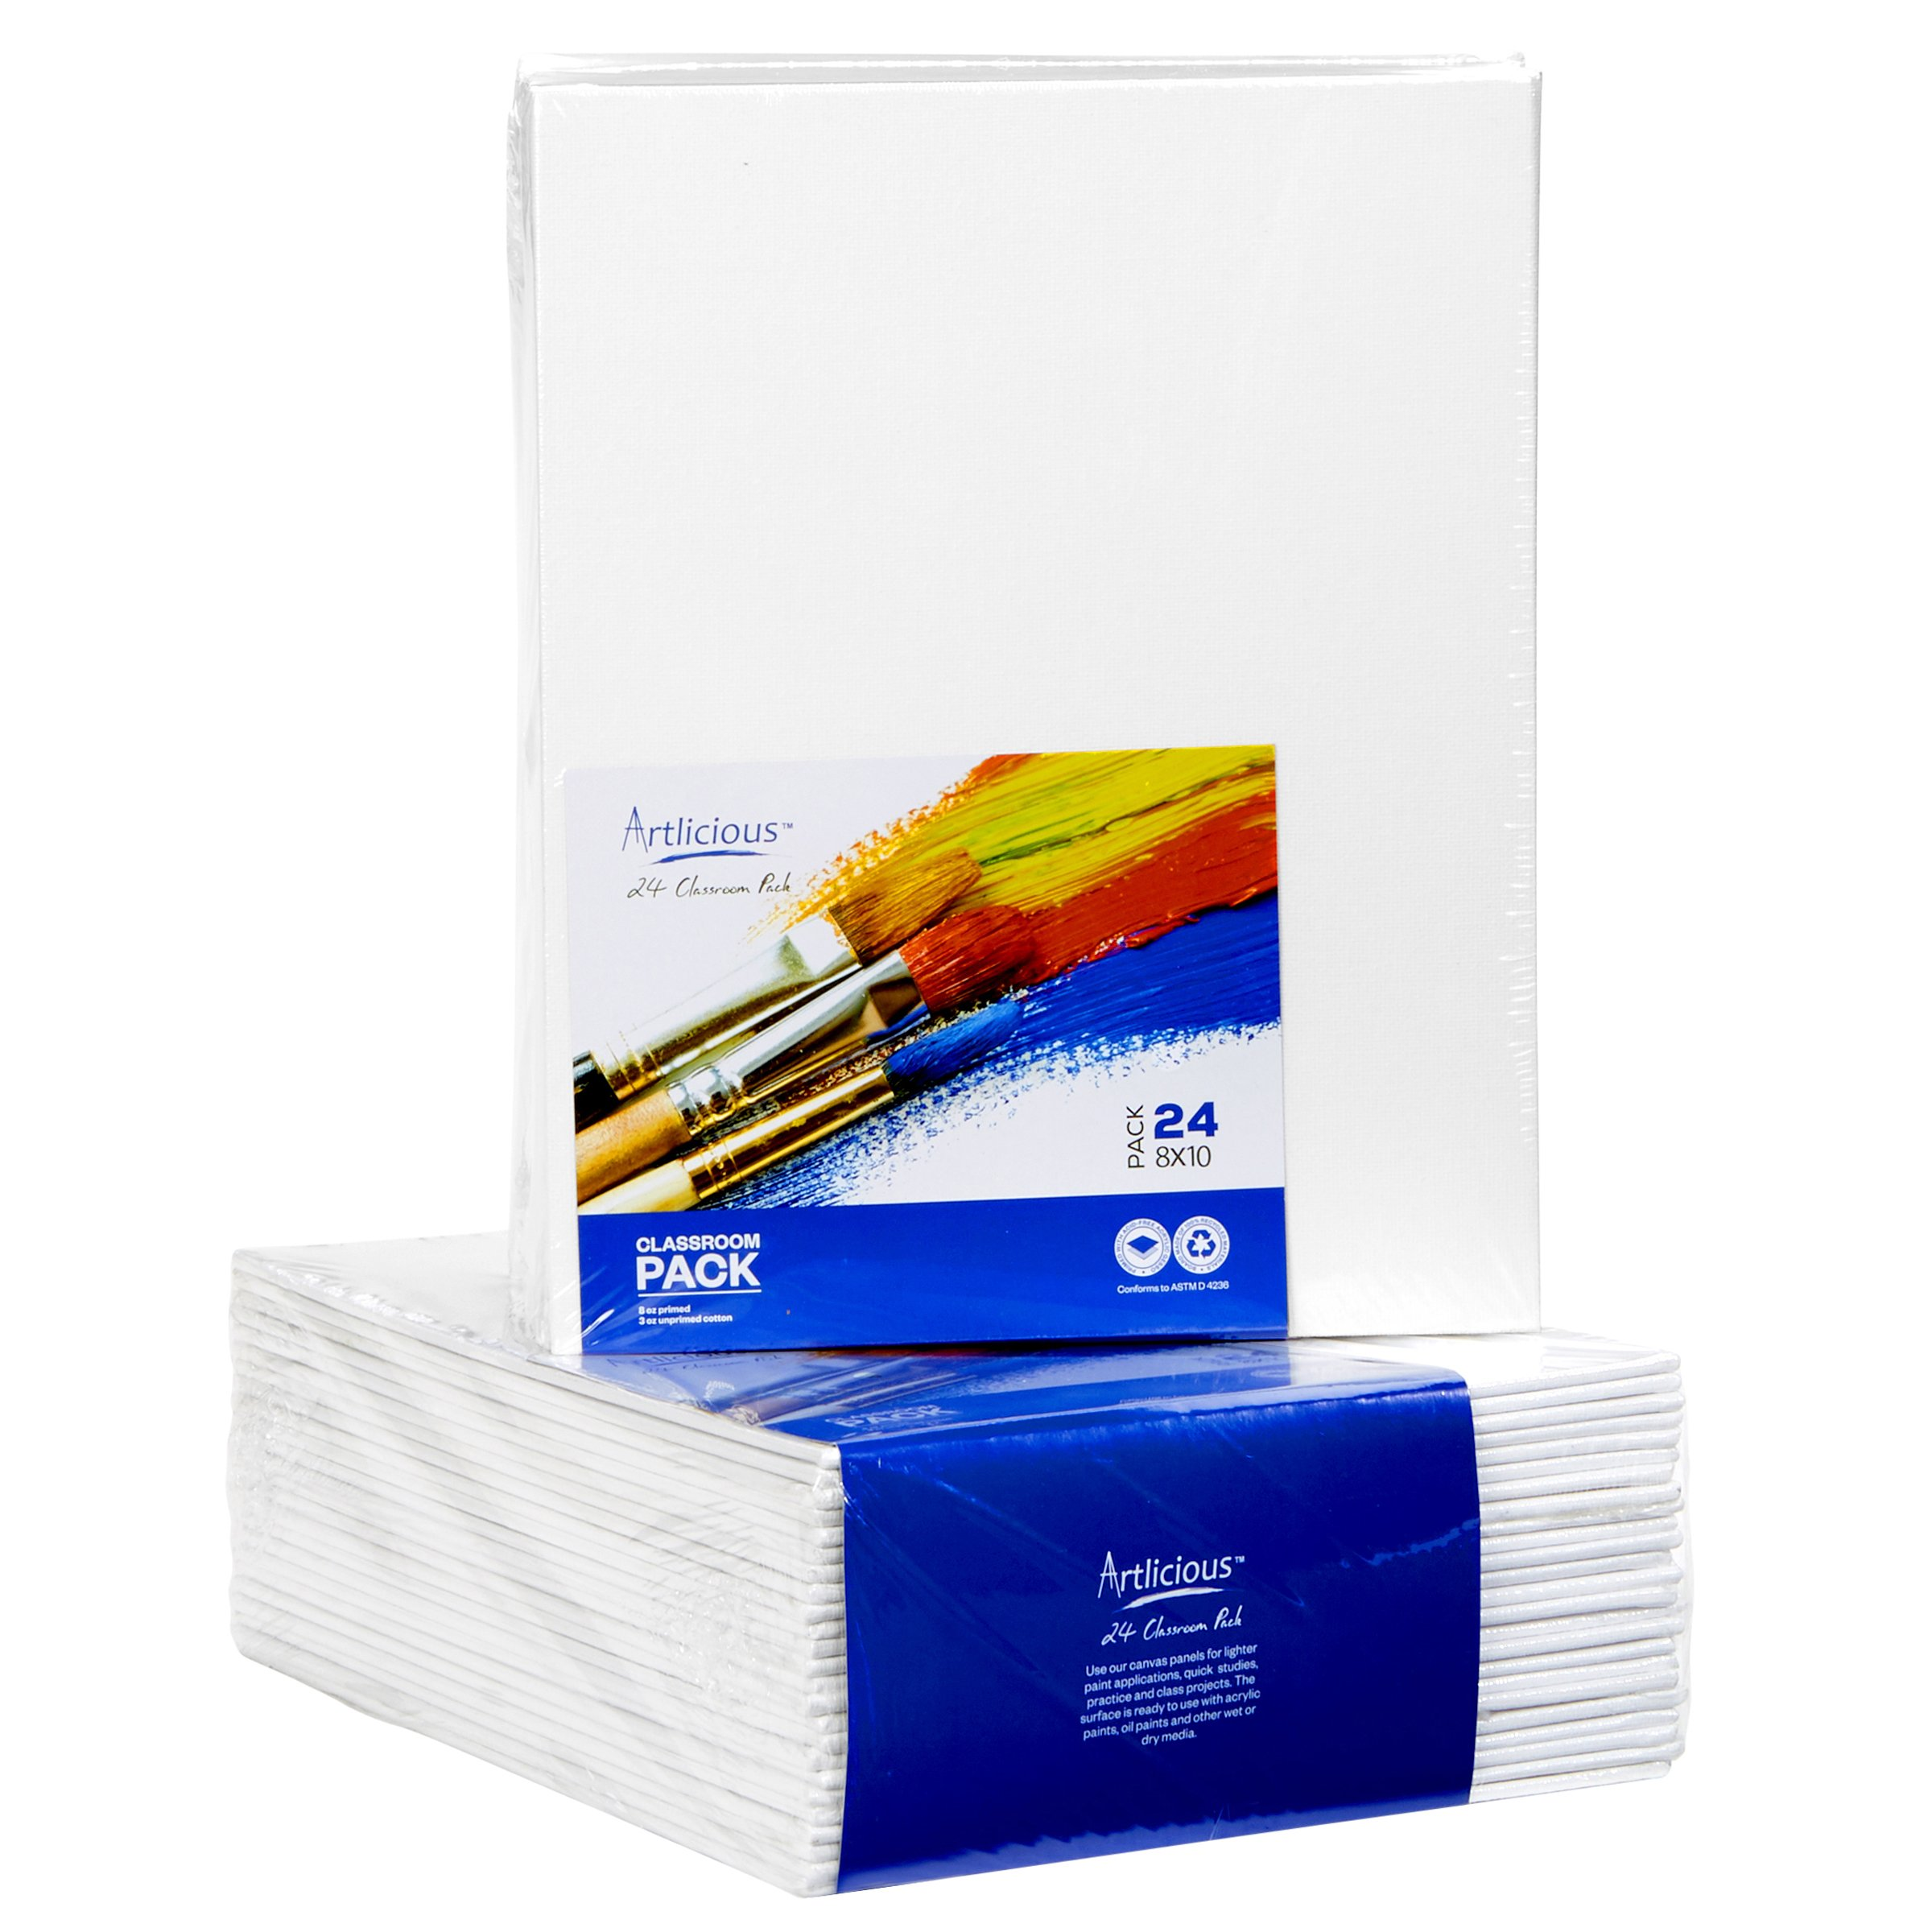 Artlicious - 8x10 Classroom Super Value 24 Pack - Artist Canvas Panel Boards for Painting